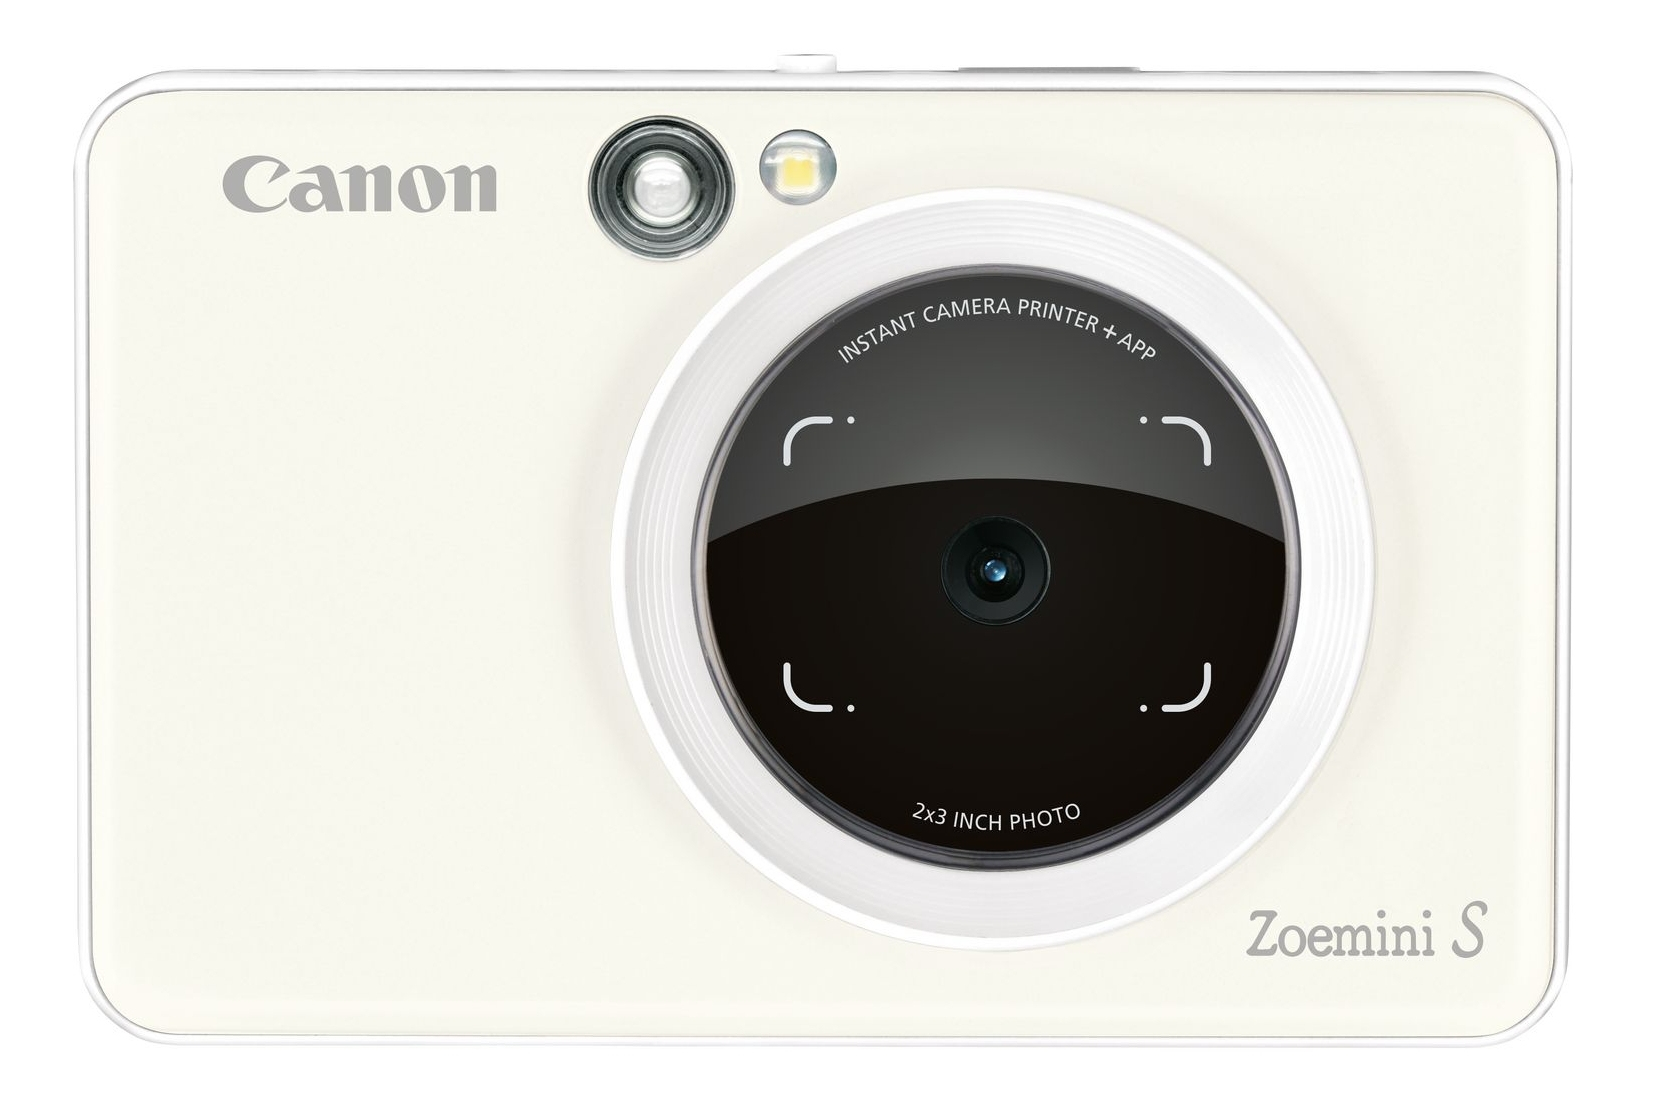 CAMERA PRINTER ZOEMINI S PEARL WHITE                      IN